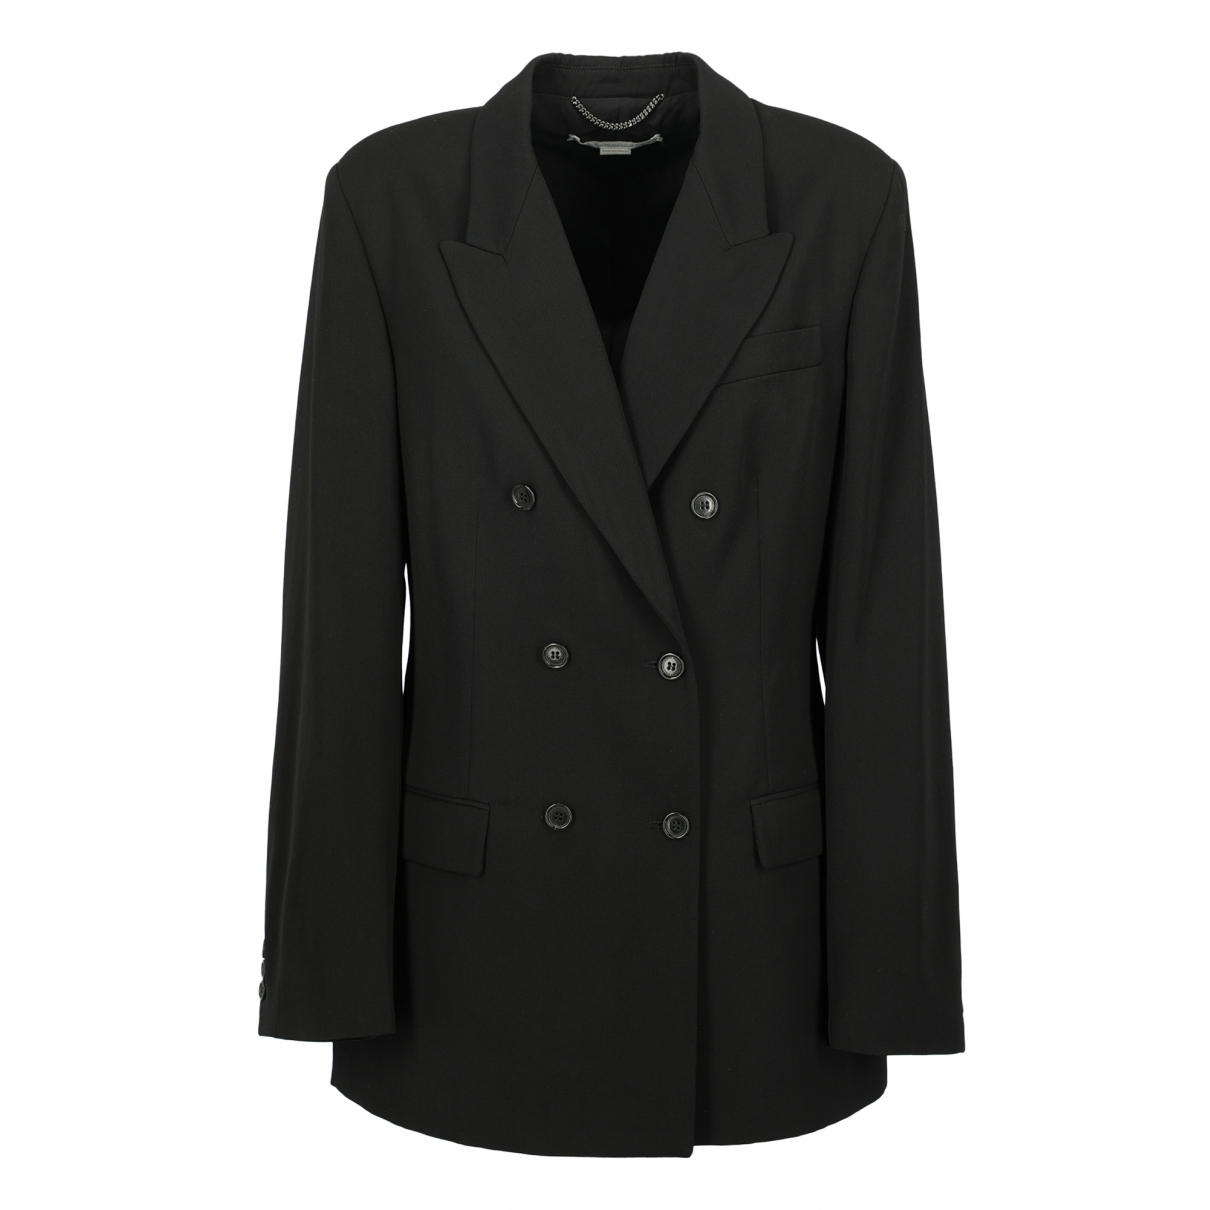 Stella Mccartney \N Black Wool jacket for Women 44 IT